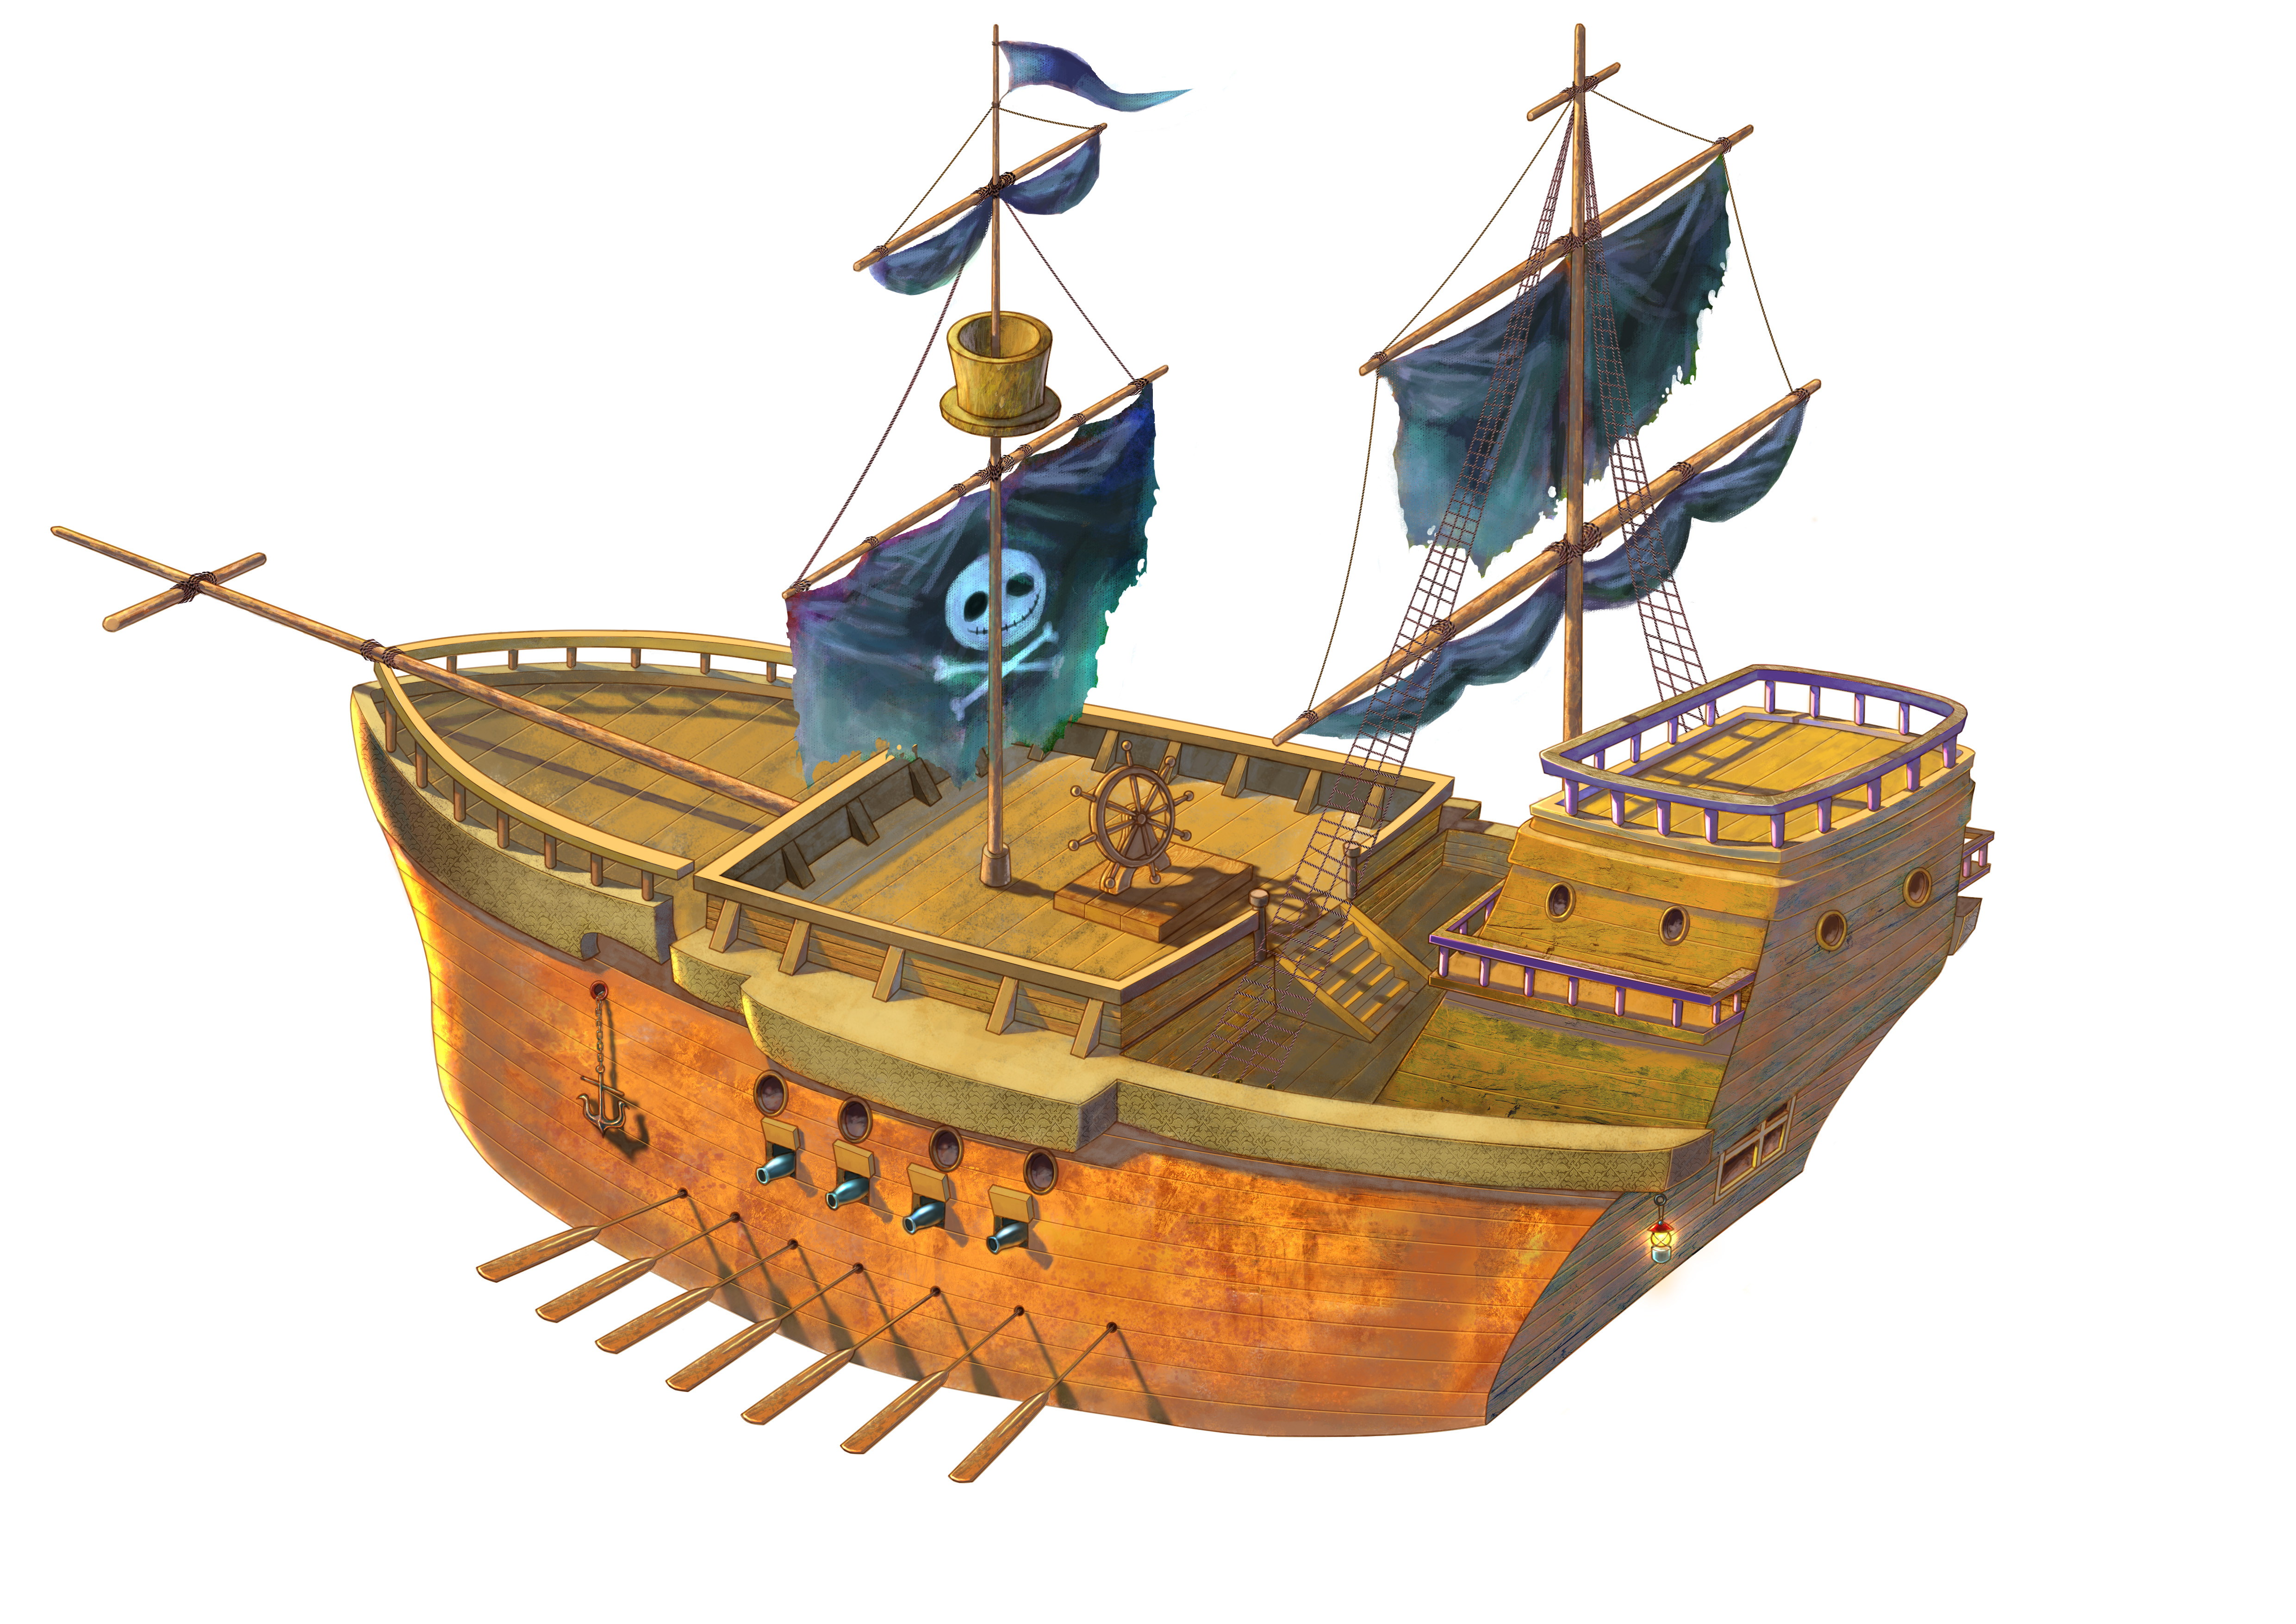 Animated pirate ships - photo#20